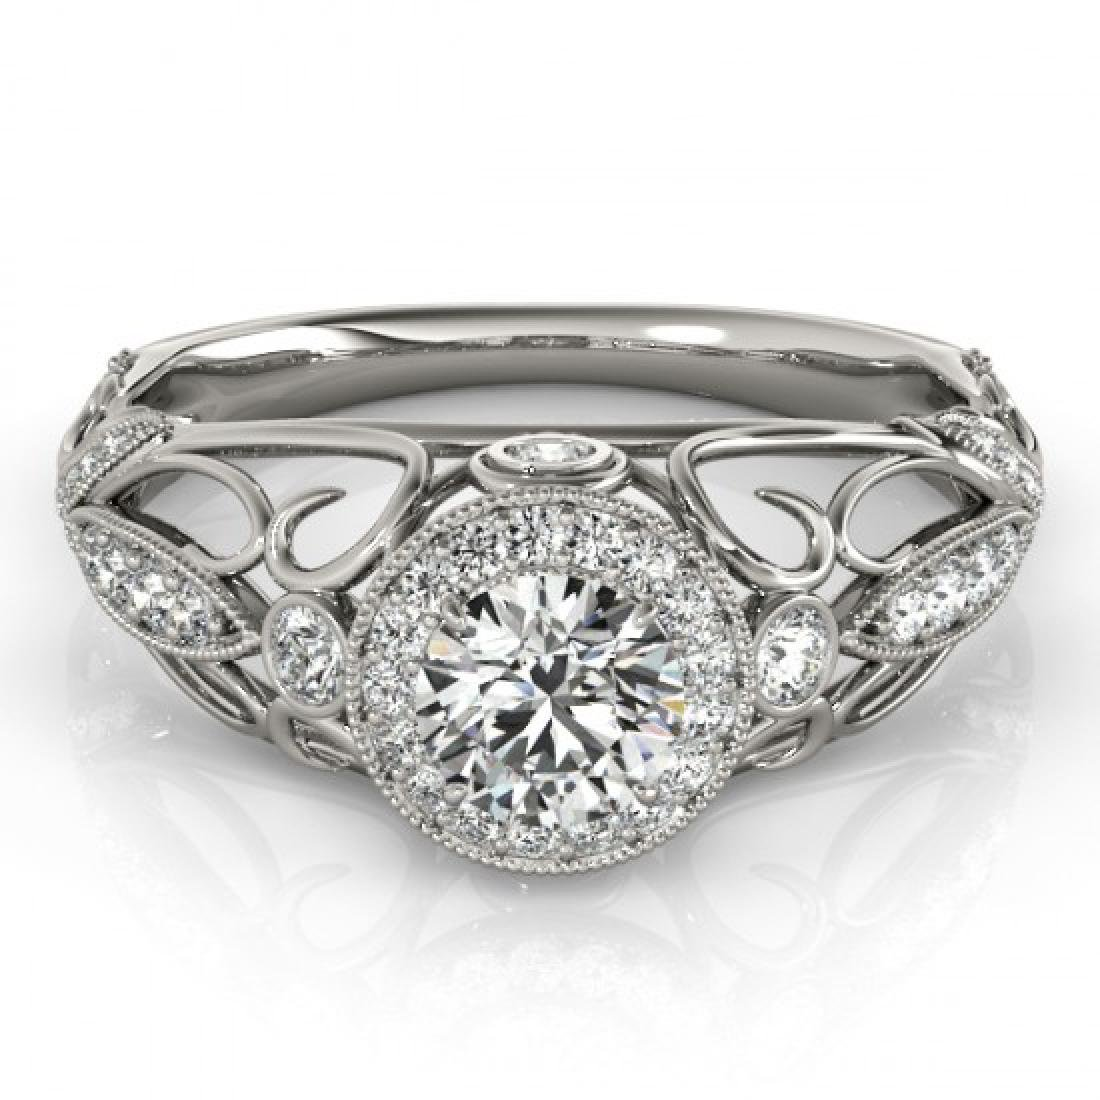 0.93 CTW Certified VS/SI Diamond Solitaire Antique Ring